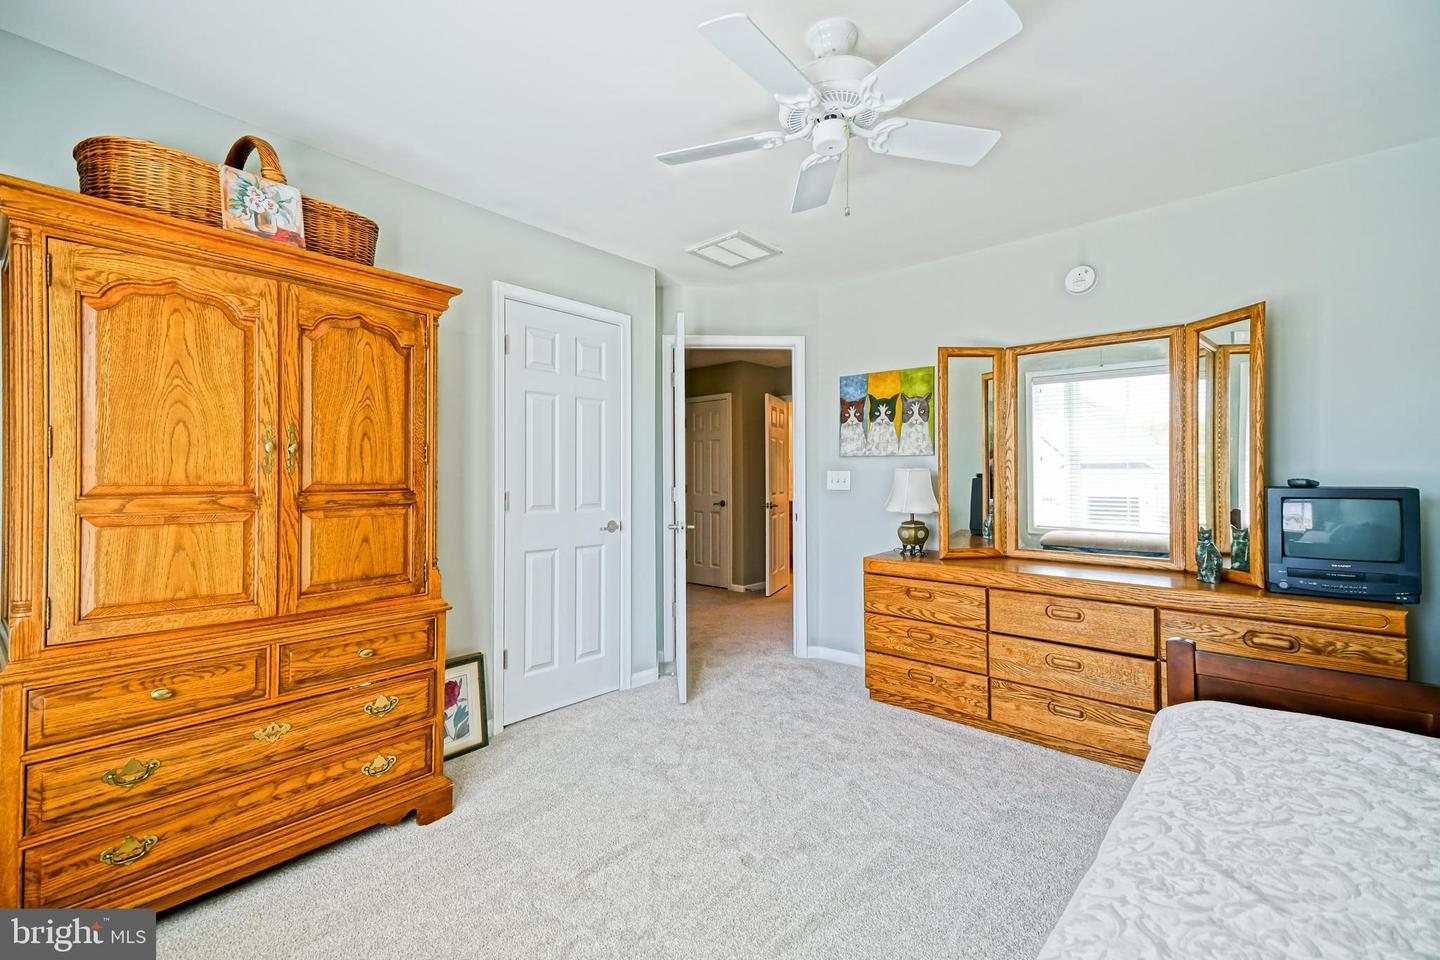 DESU139128-301667382893-2019-08-05-10-43-56 35222 Overfalls Dr N | Lewes, DE Real Estate For Sale | MLS# Desu139128  - Lee Ann Group